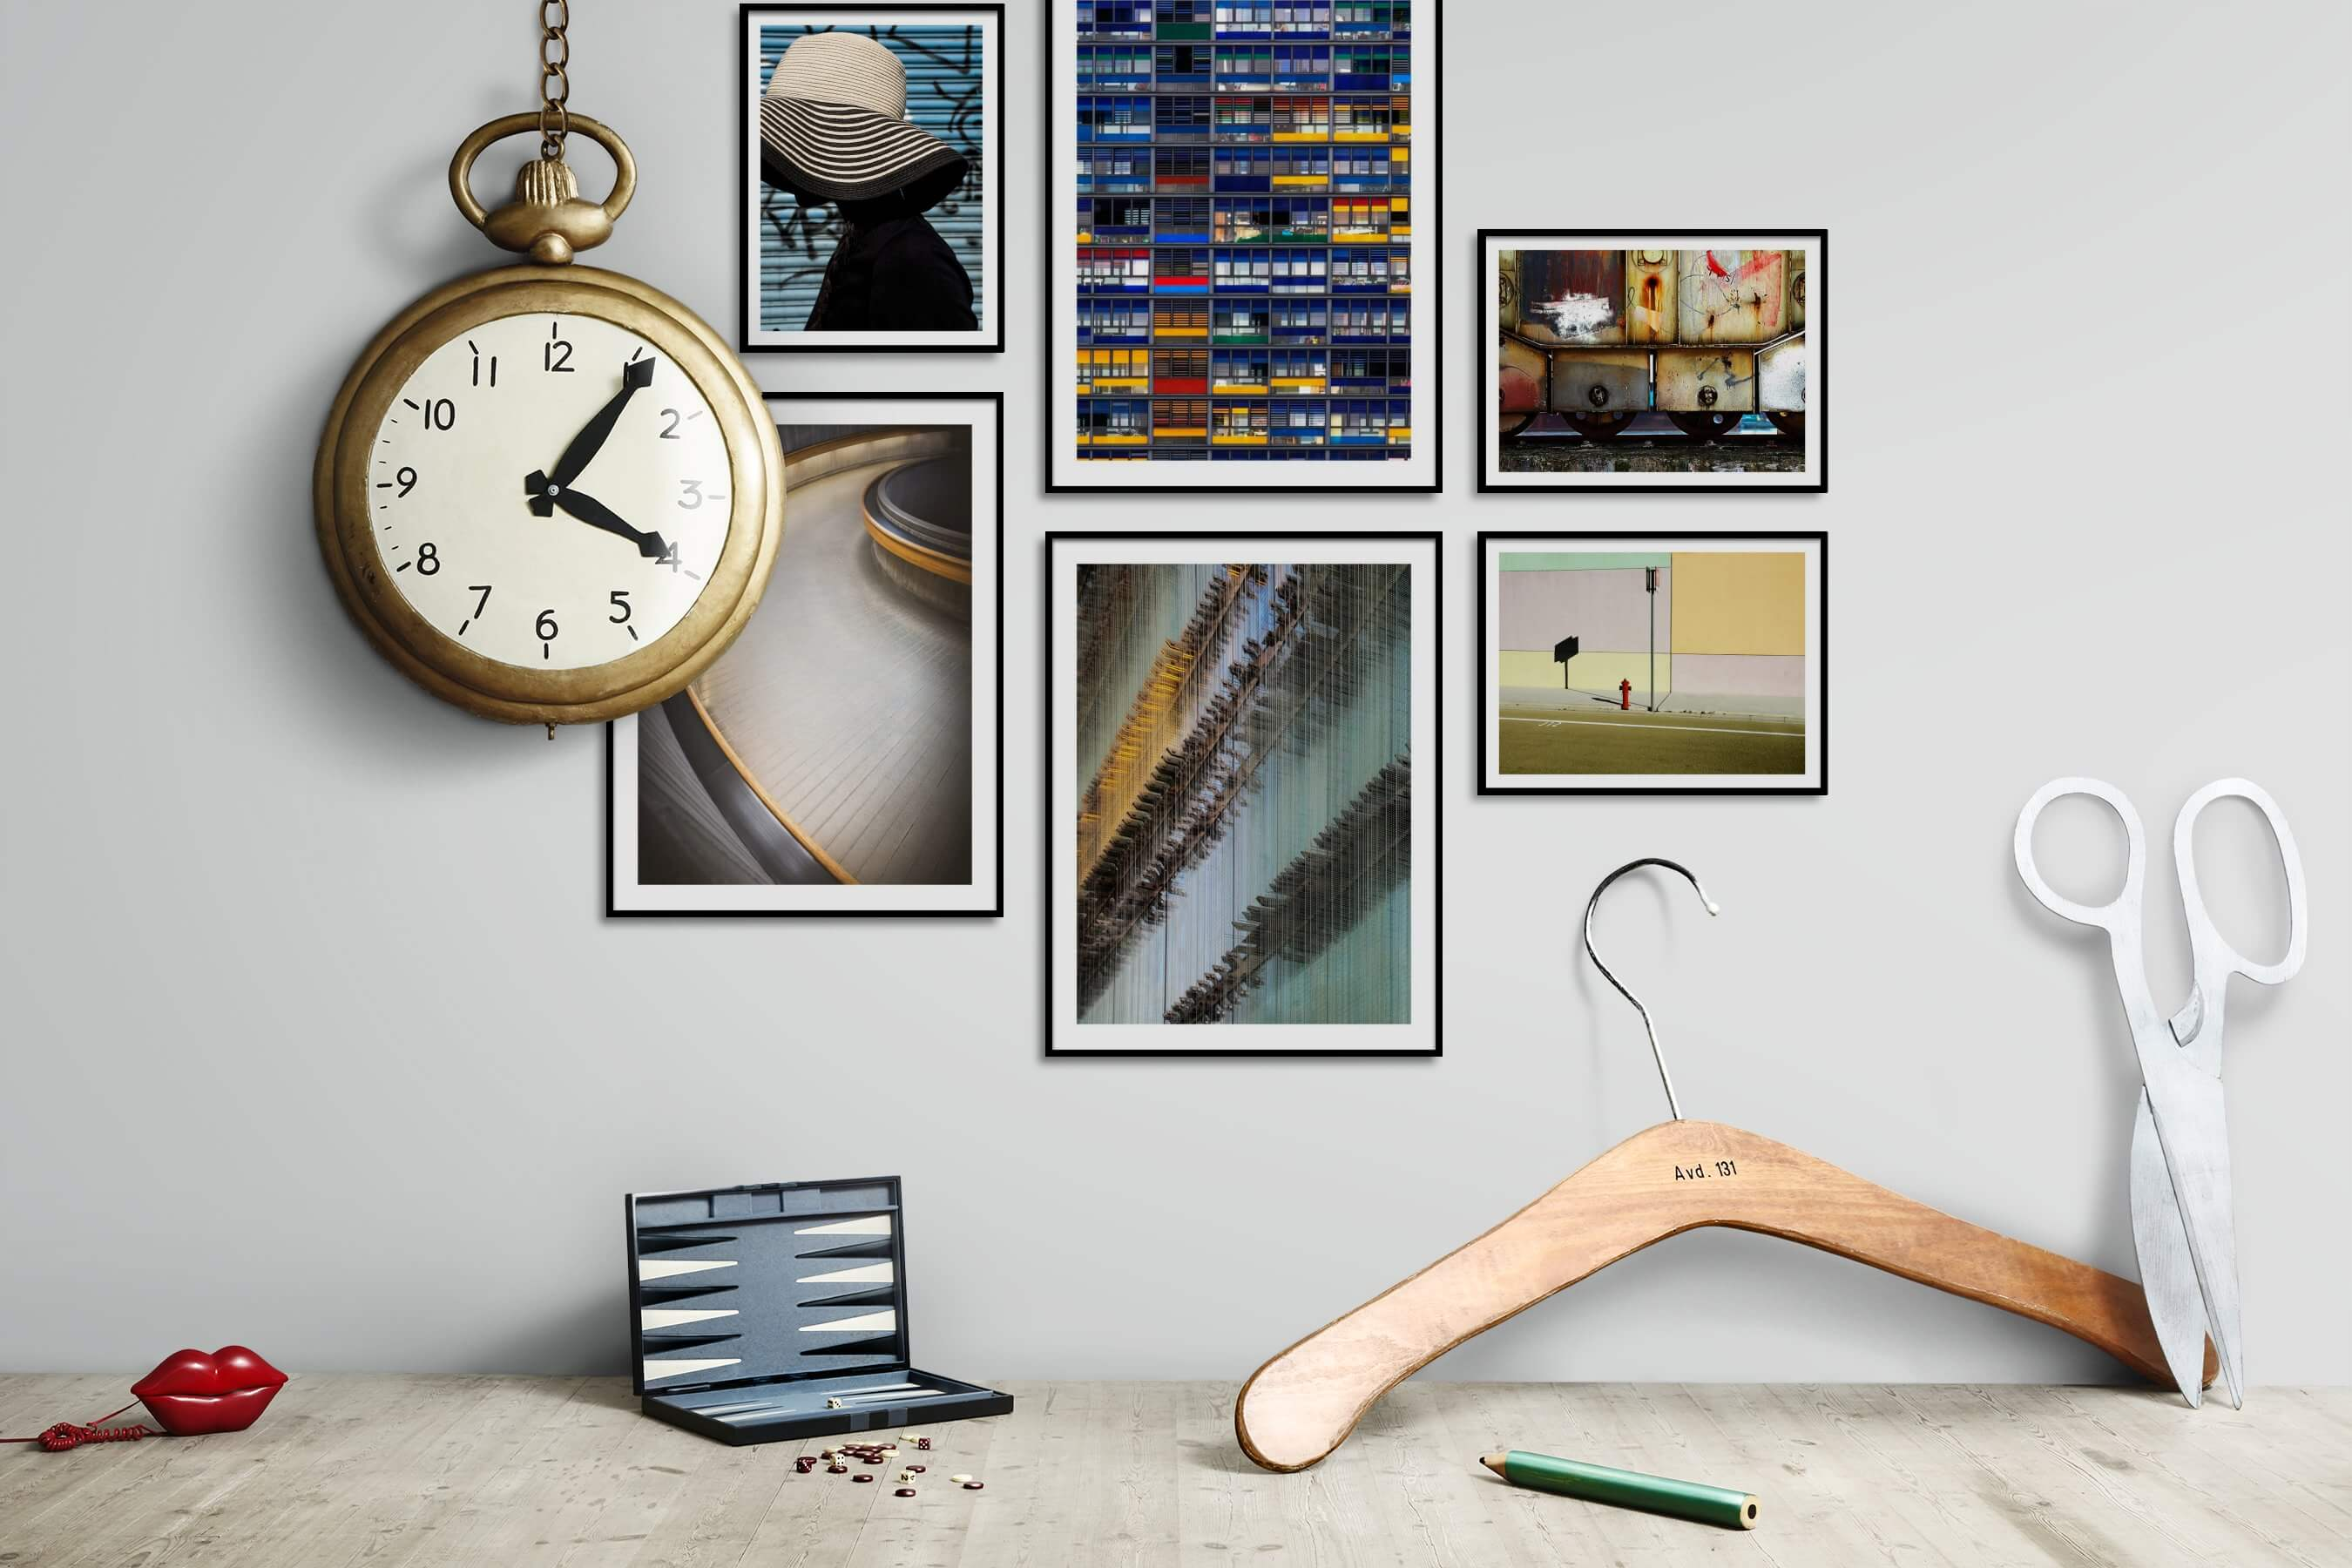 Gallery wall idea with six framed pictures arranged on a wall depicting Fashion & Beauty, For the Moderate, For the Maximalist, City Life, and Vintage